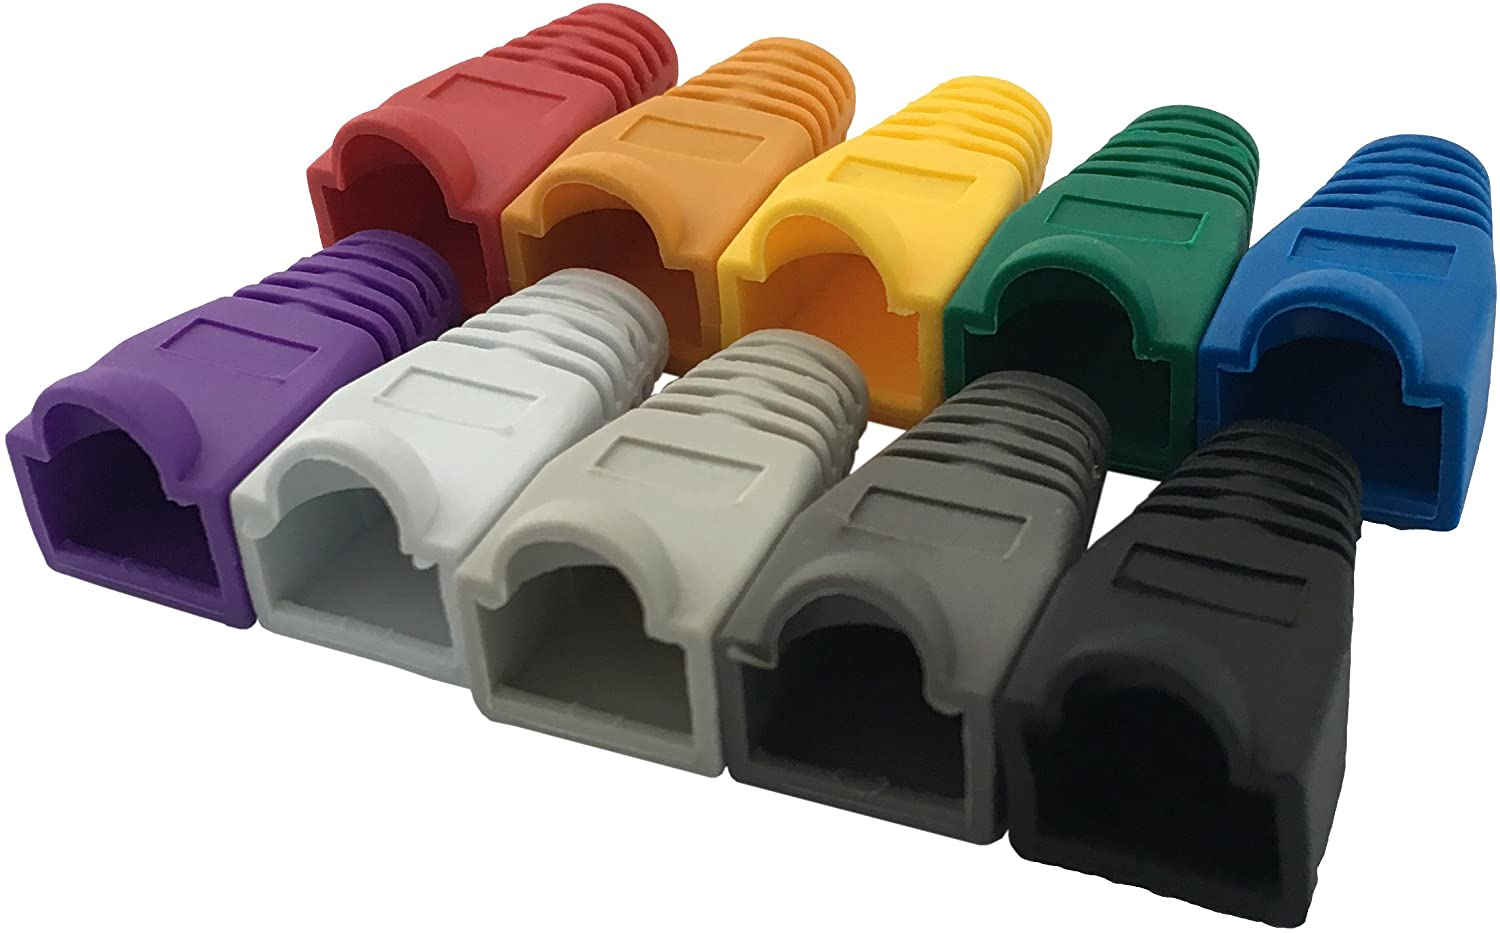 Cables 100pcs RJ45 Cat6 Cat5E Ethernet Cable Snagless Cover Strain Relief Boot @JH Cable Length: Other, Color: Purple